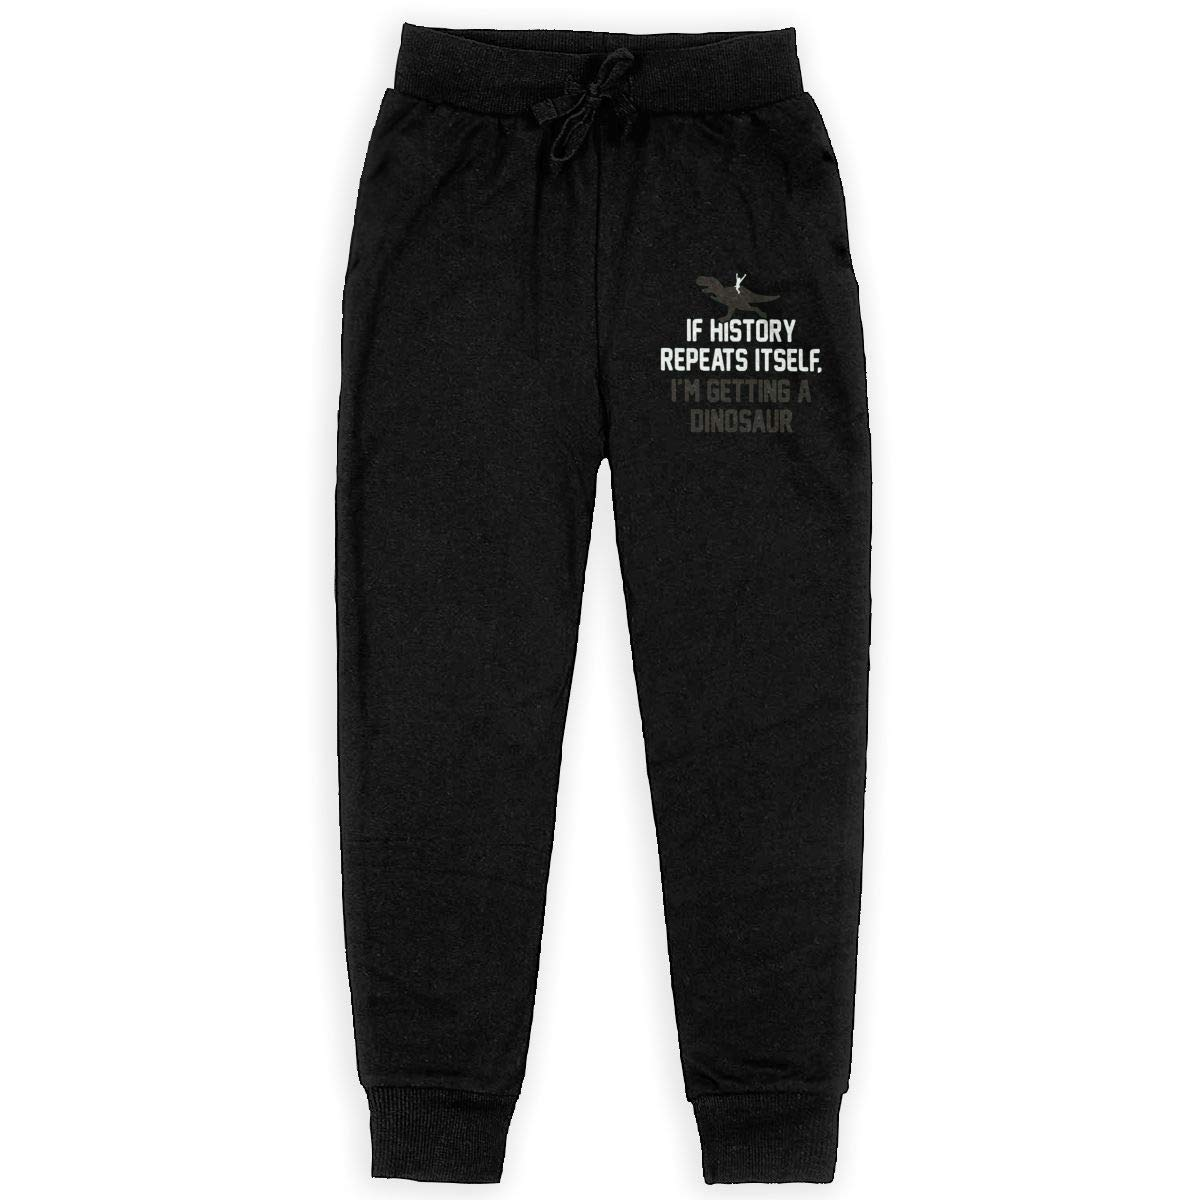 Getting A Dinosaur Boys Sweatpants,Joggers Sport Training Pants Trousers Black